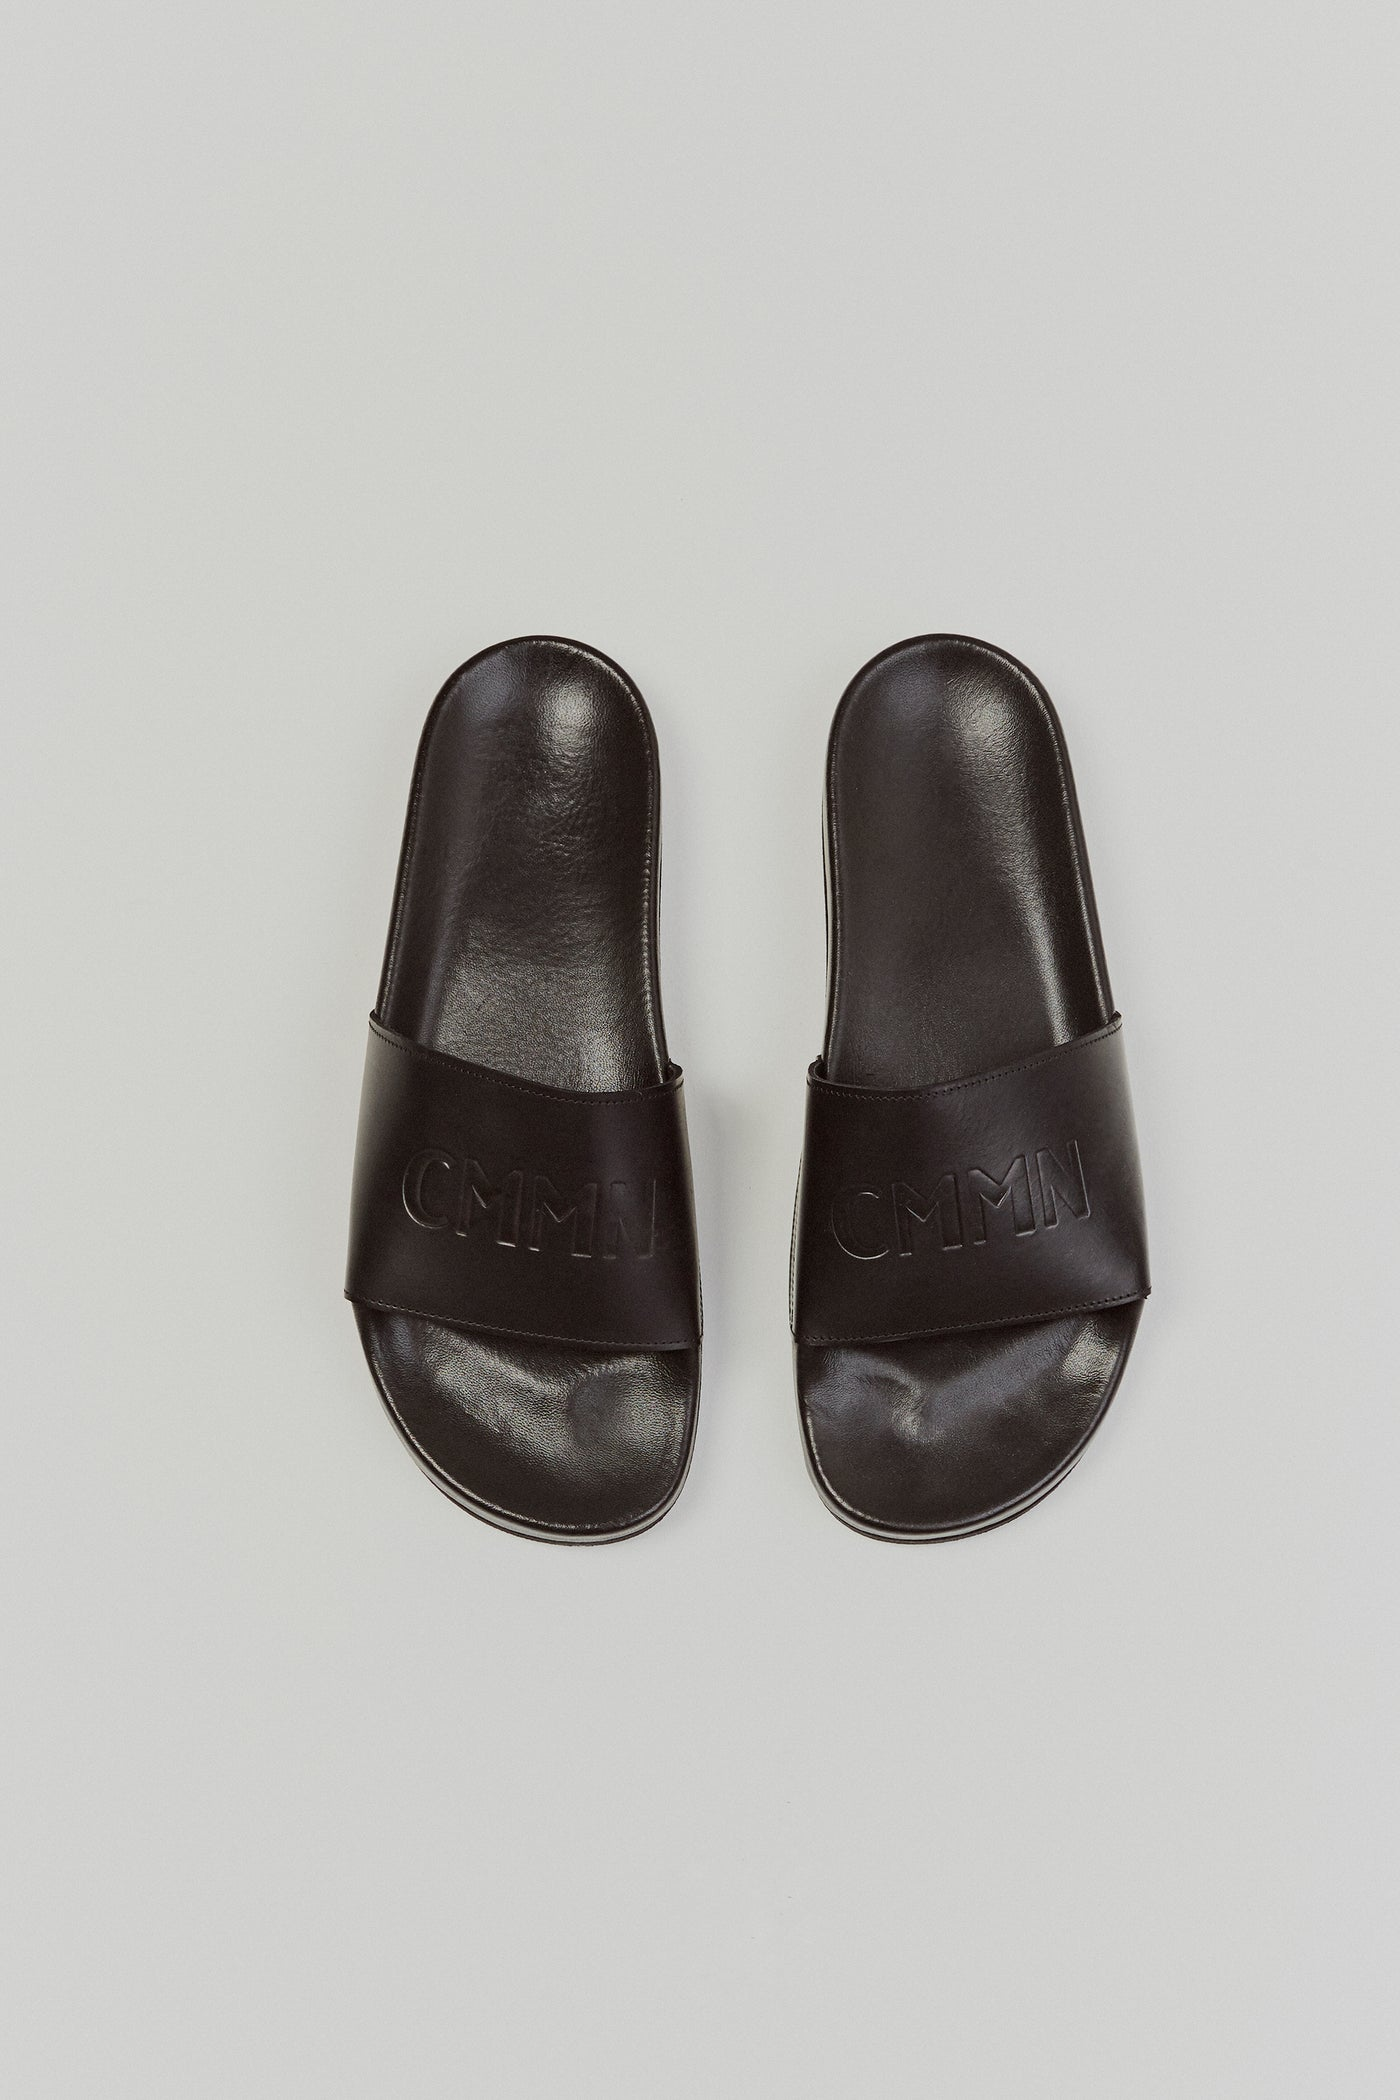 Leather Pool Sliders Black